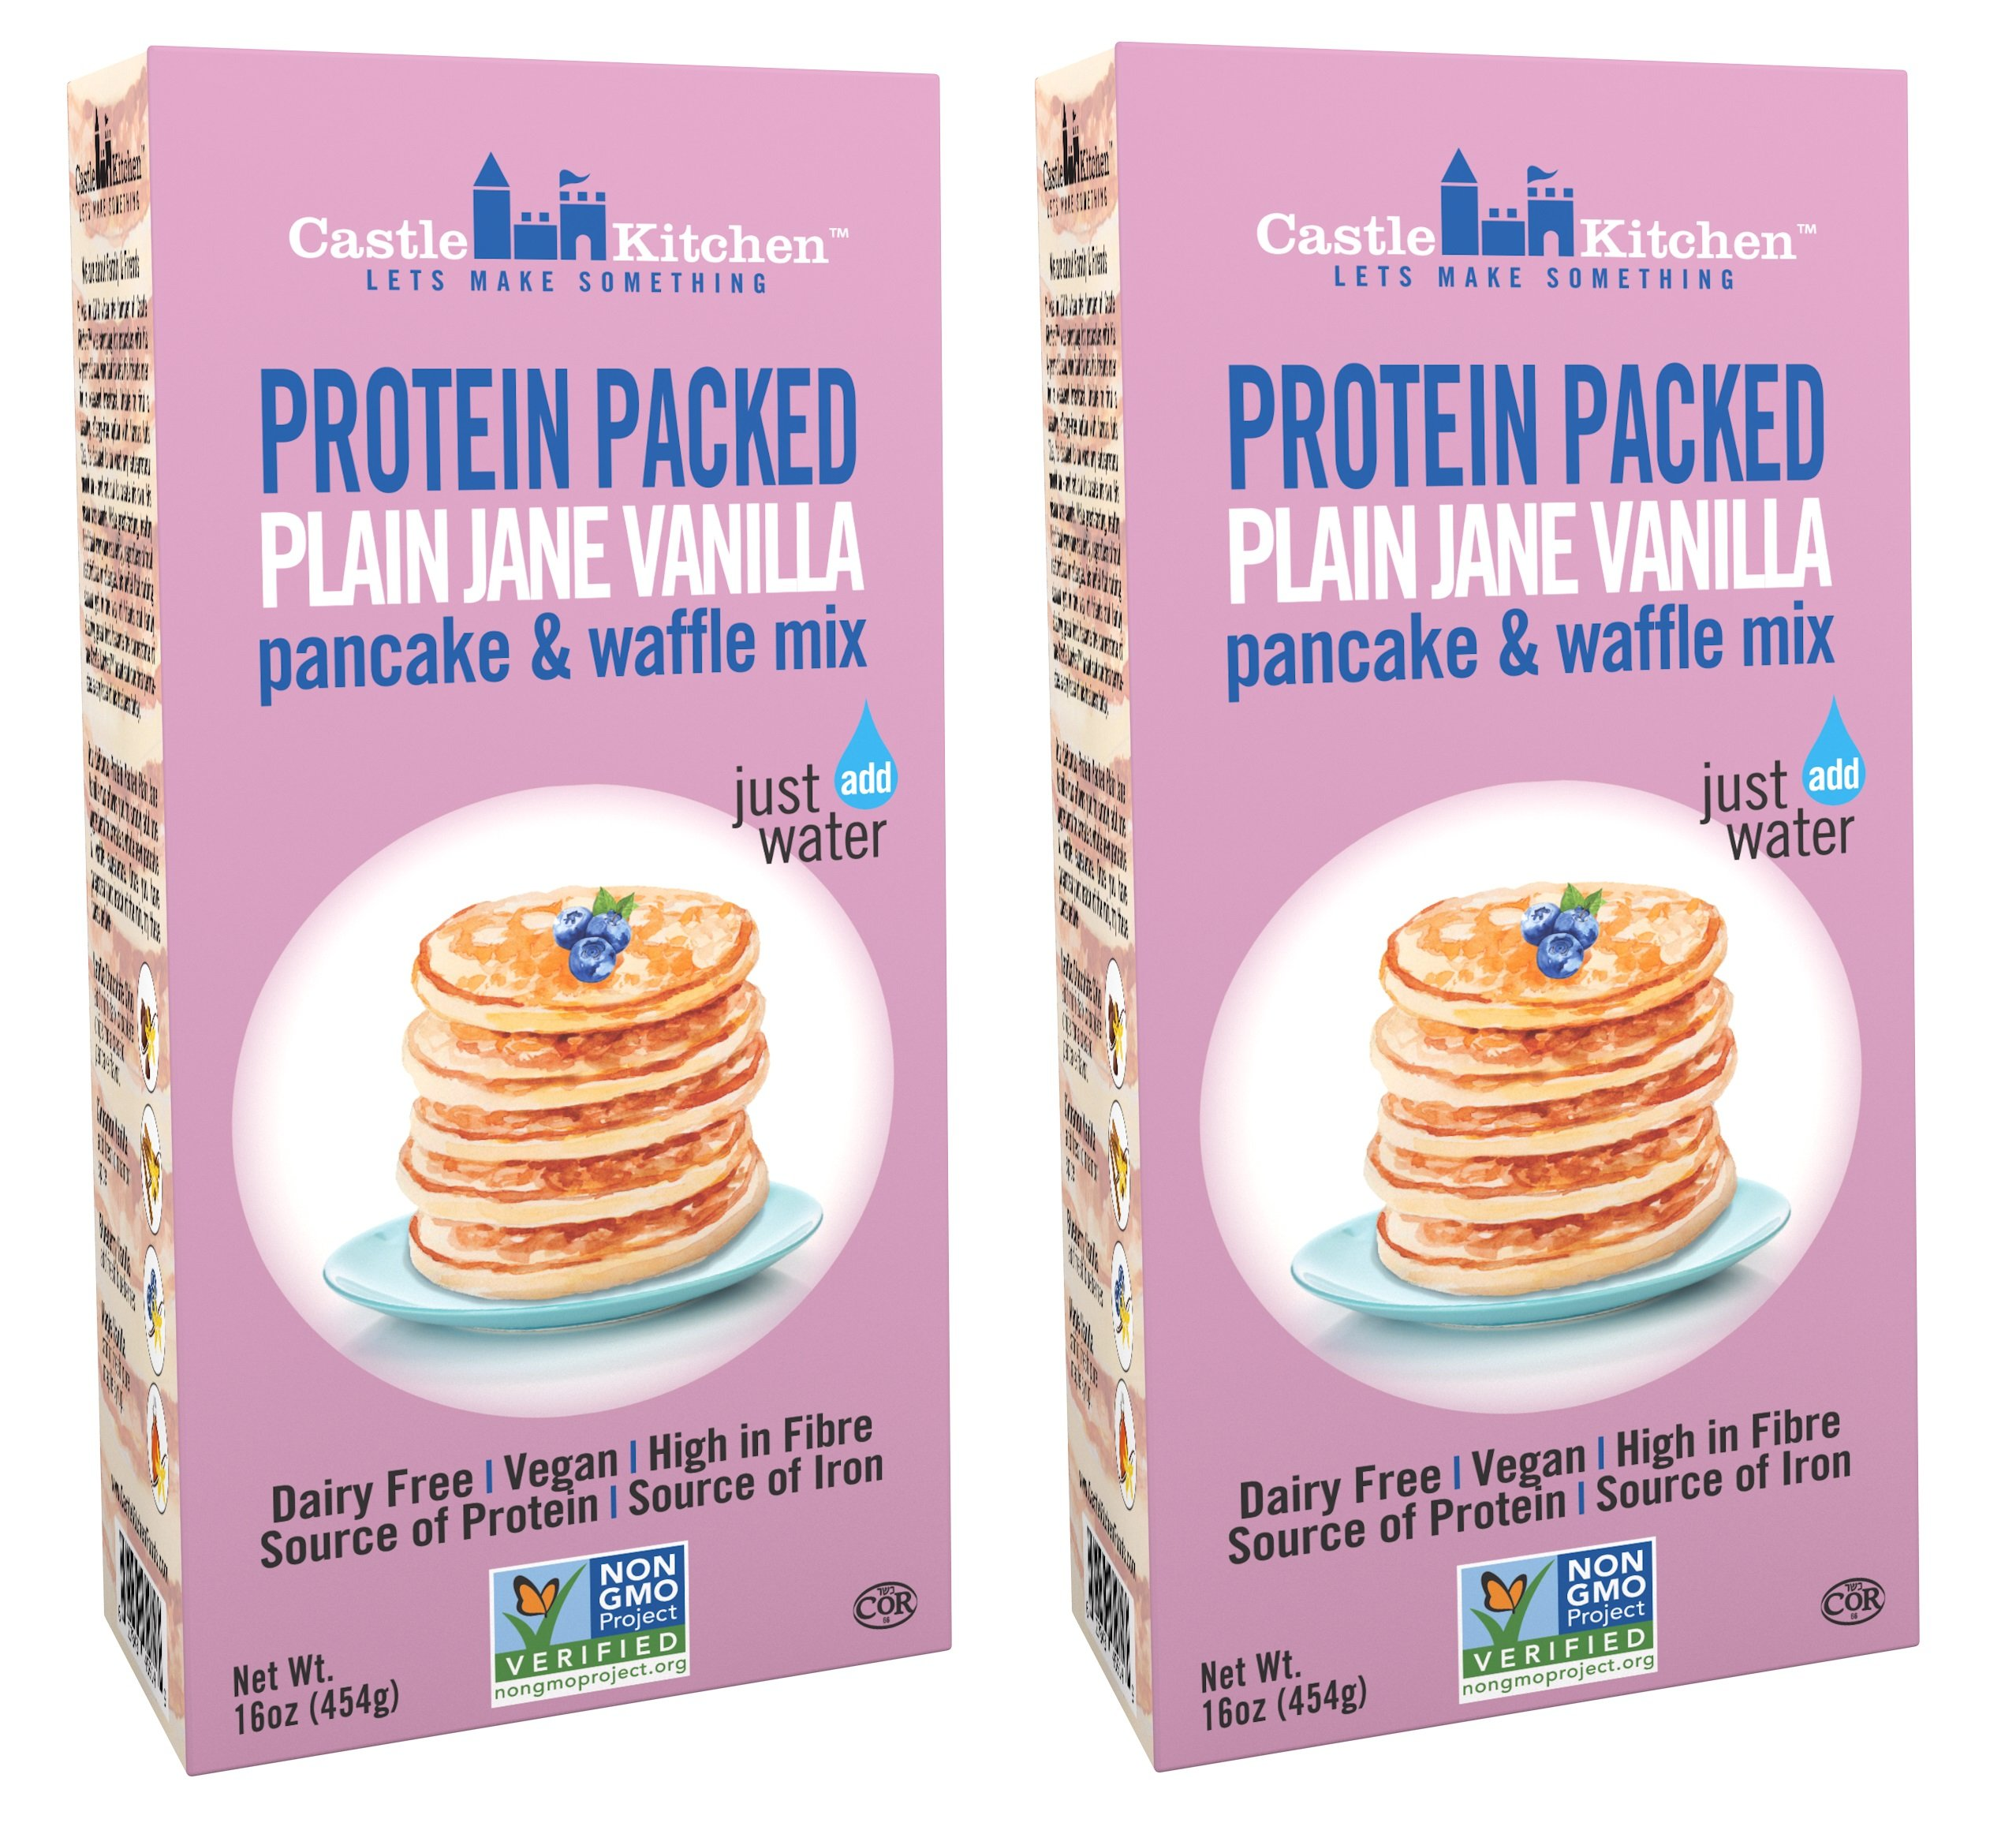 Protein Packed Pancake & Waffle Mix, Plain Jane Vanilla - Dairy-Free & Vegan - Complete Mix, Just Add Water - 16 oz (Pack of 2) by Castle Kitchen